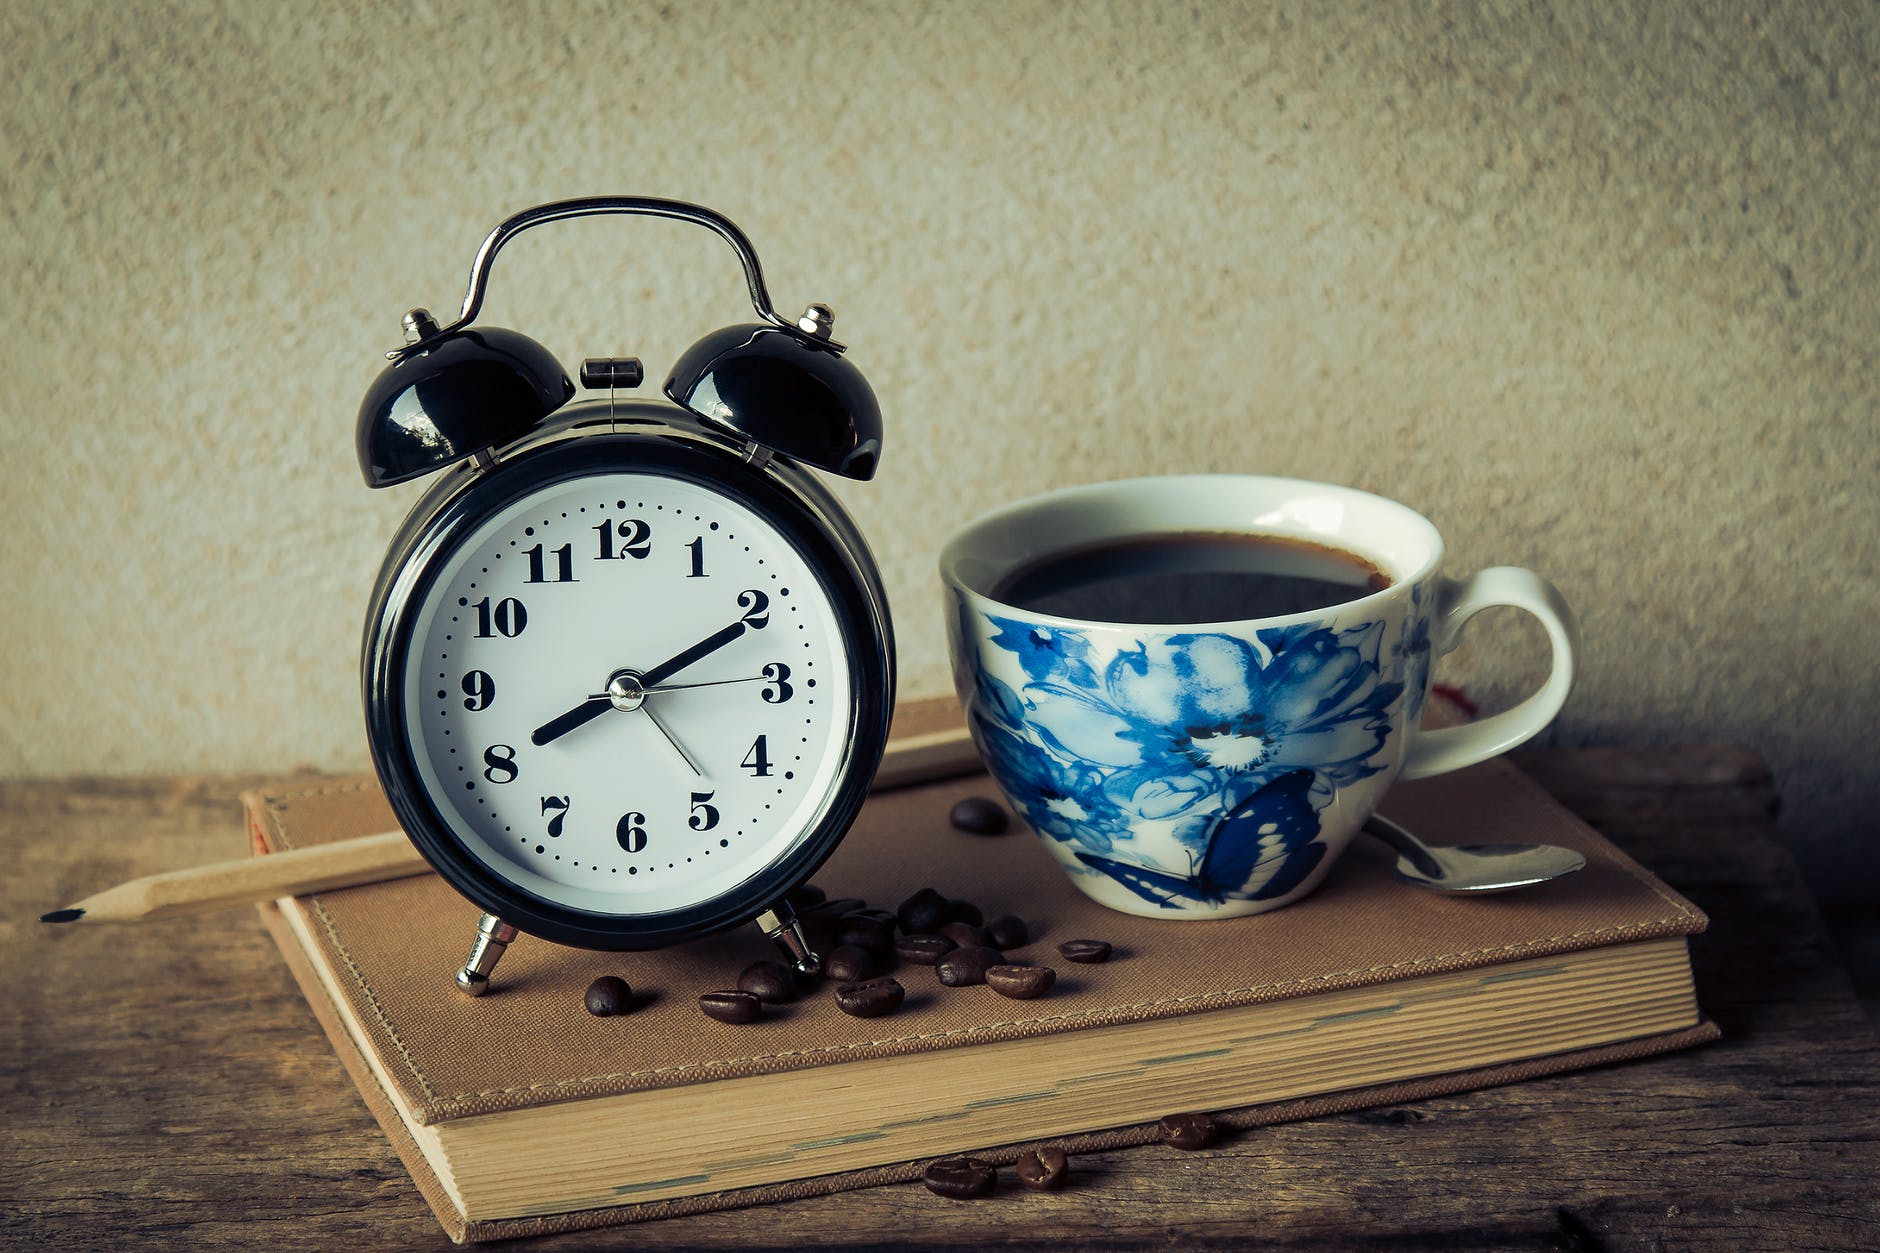 How Long Does Coffee Last?